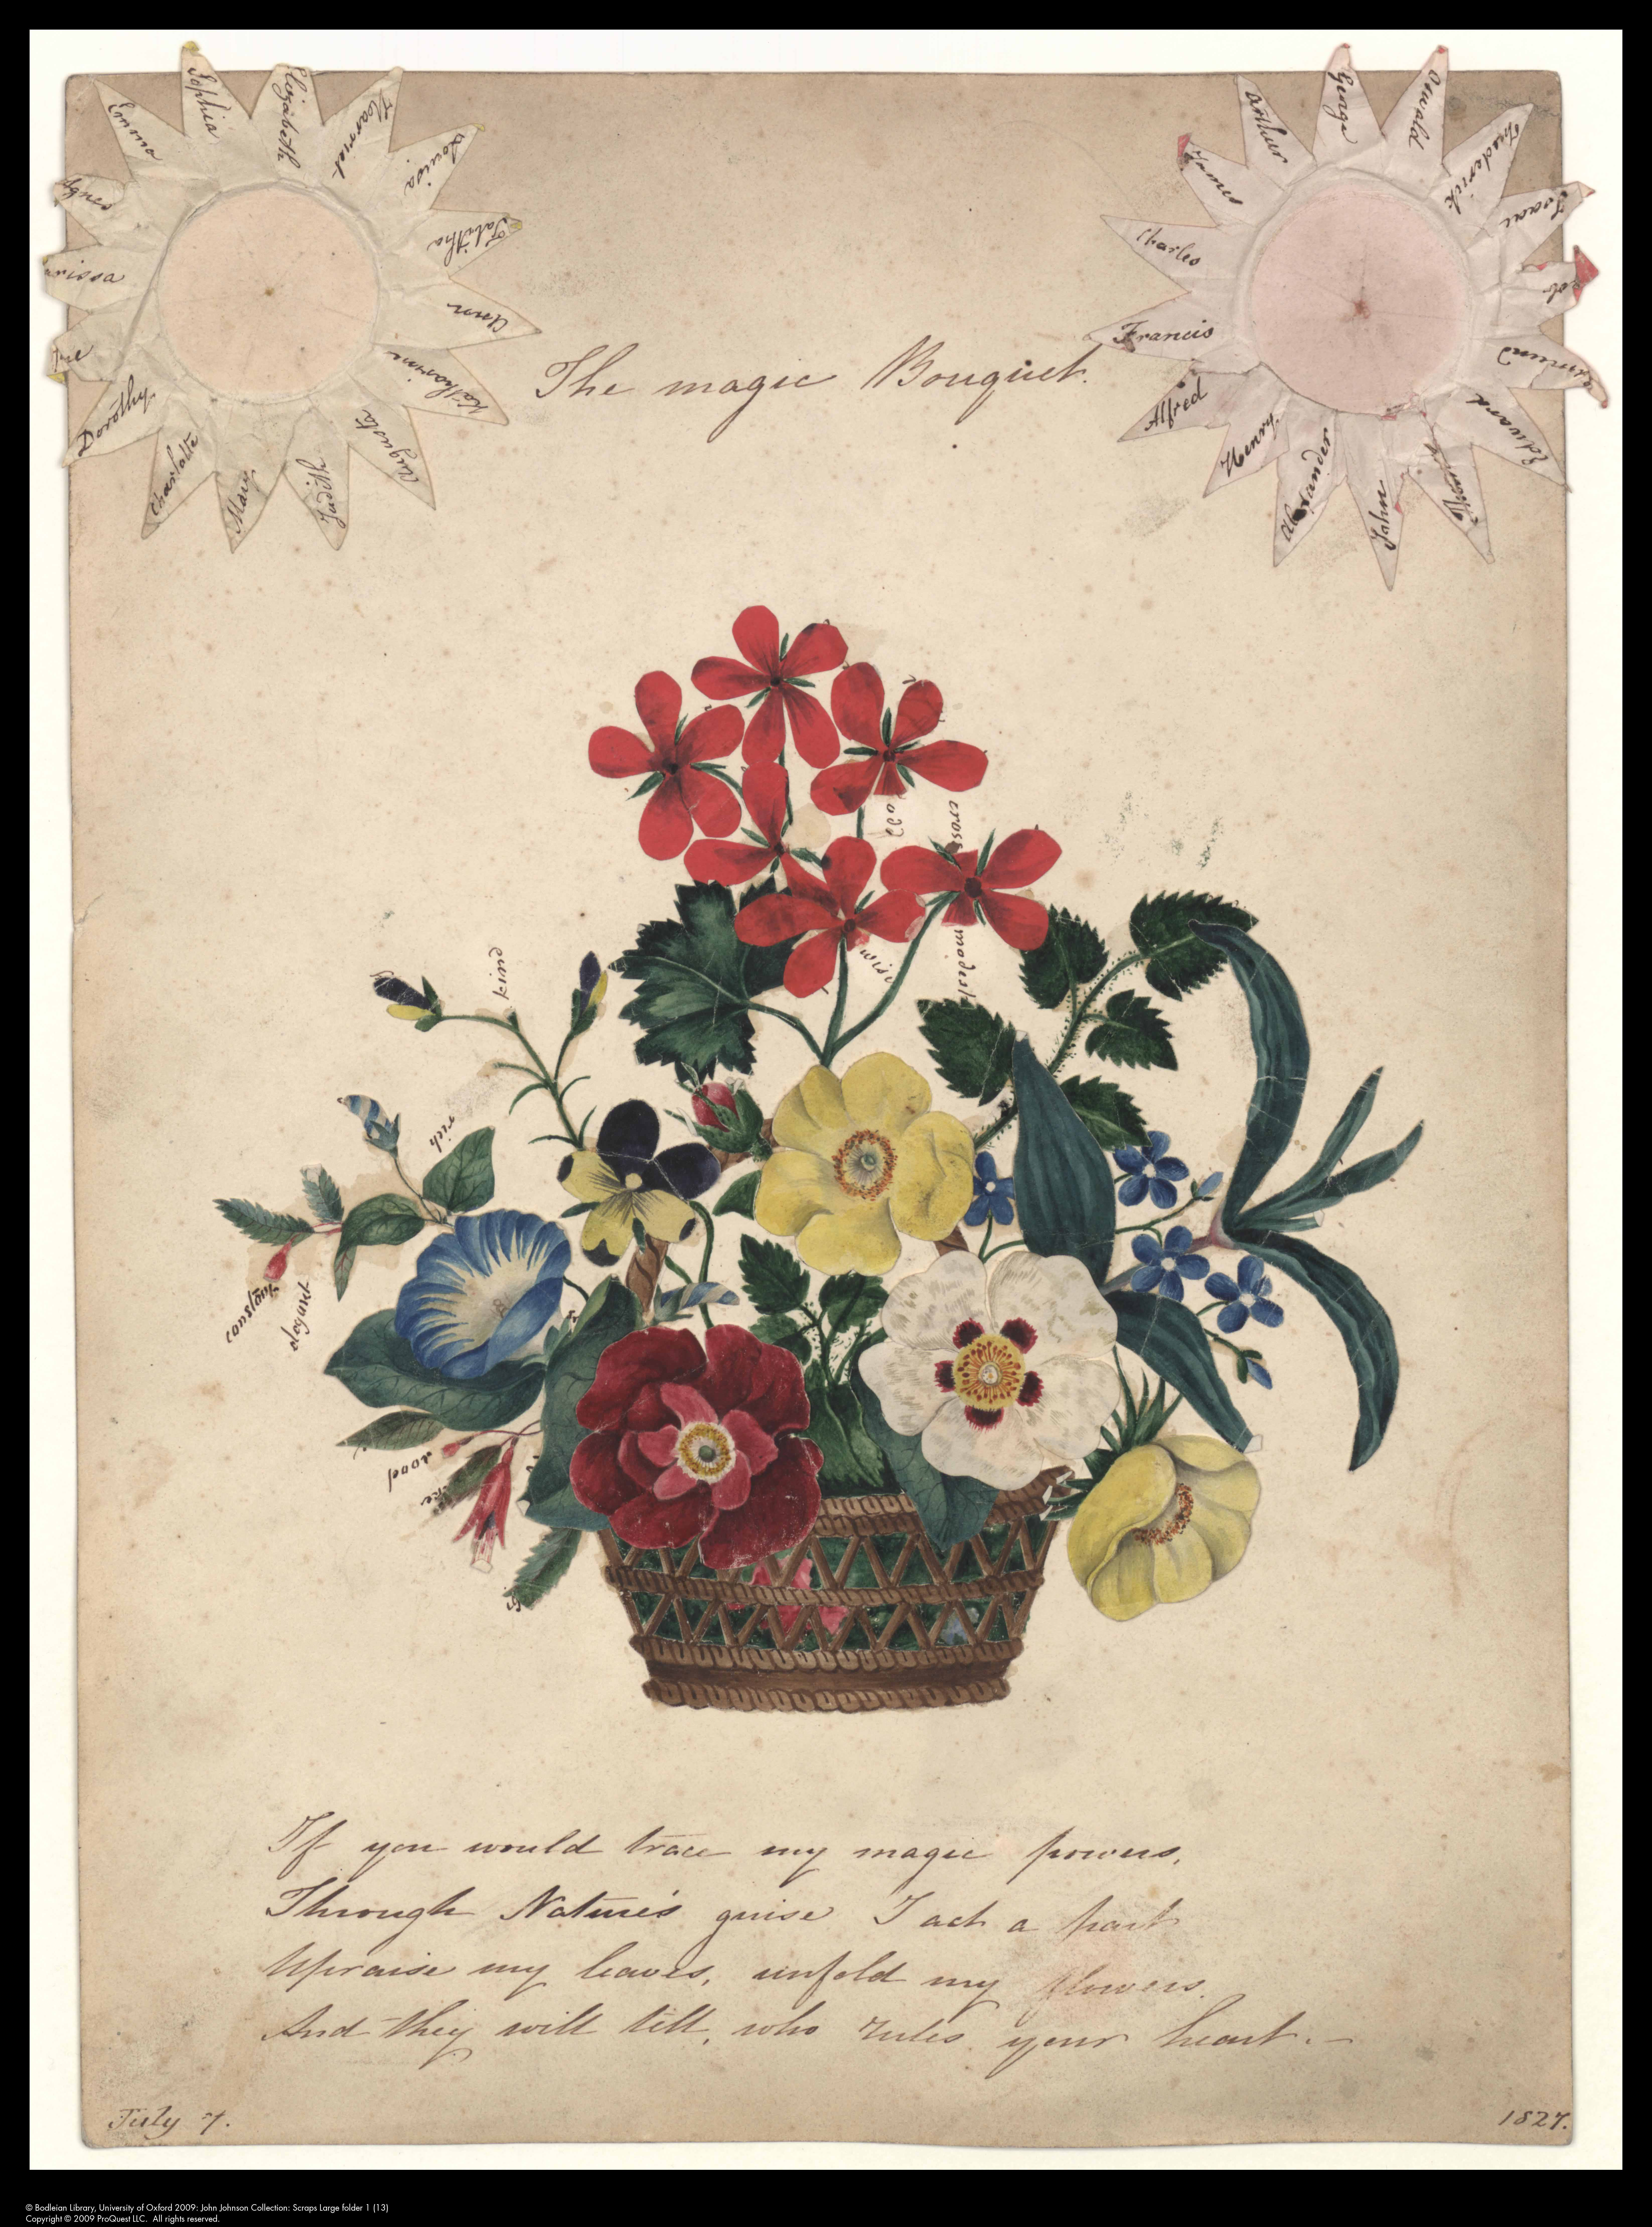 Manuscript bouquet, with meanings under the flowers